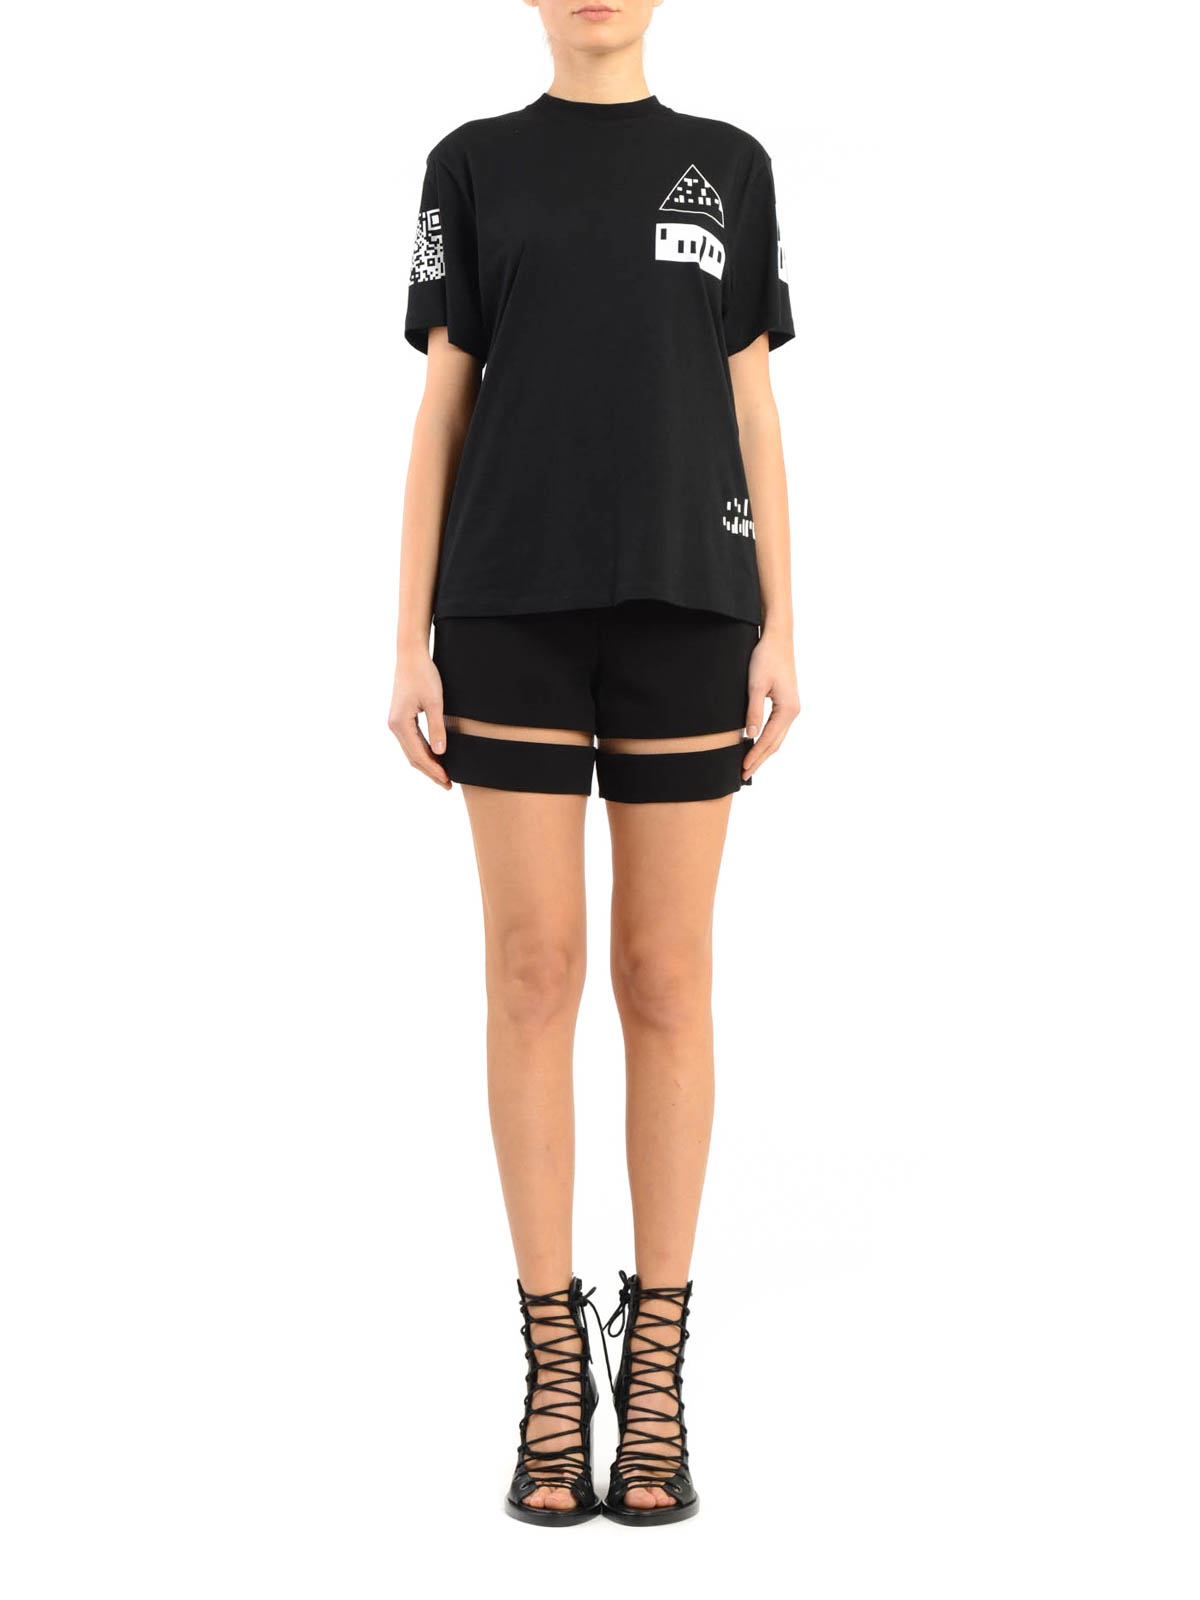 Printed t shirt by alexander wang t shirts ikrix for Online printed t shirts